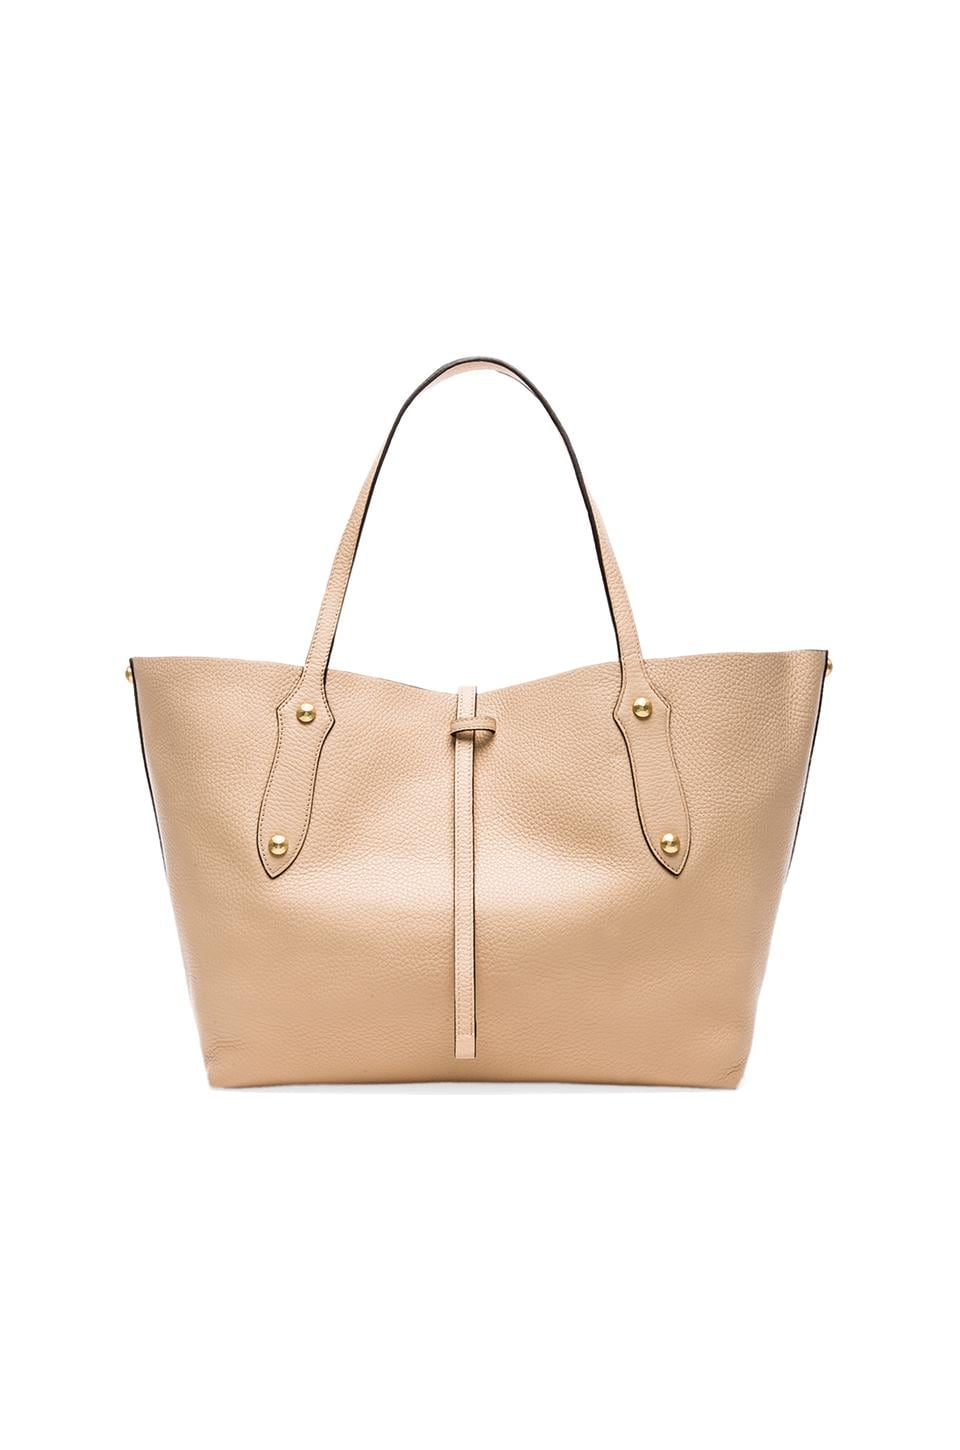 Annabel Ingall Isabella Small Tote in Pouff